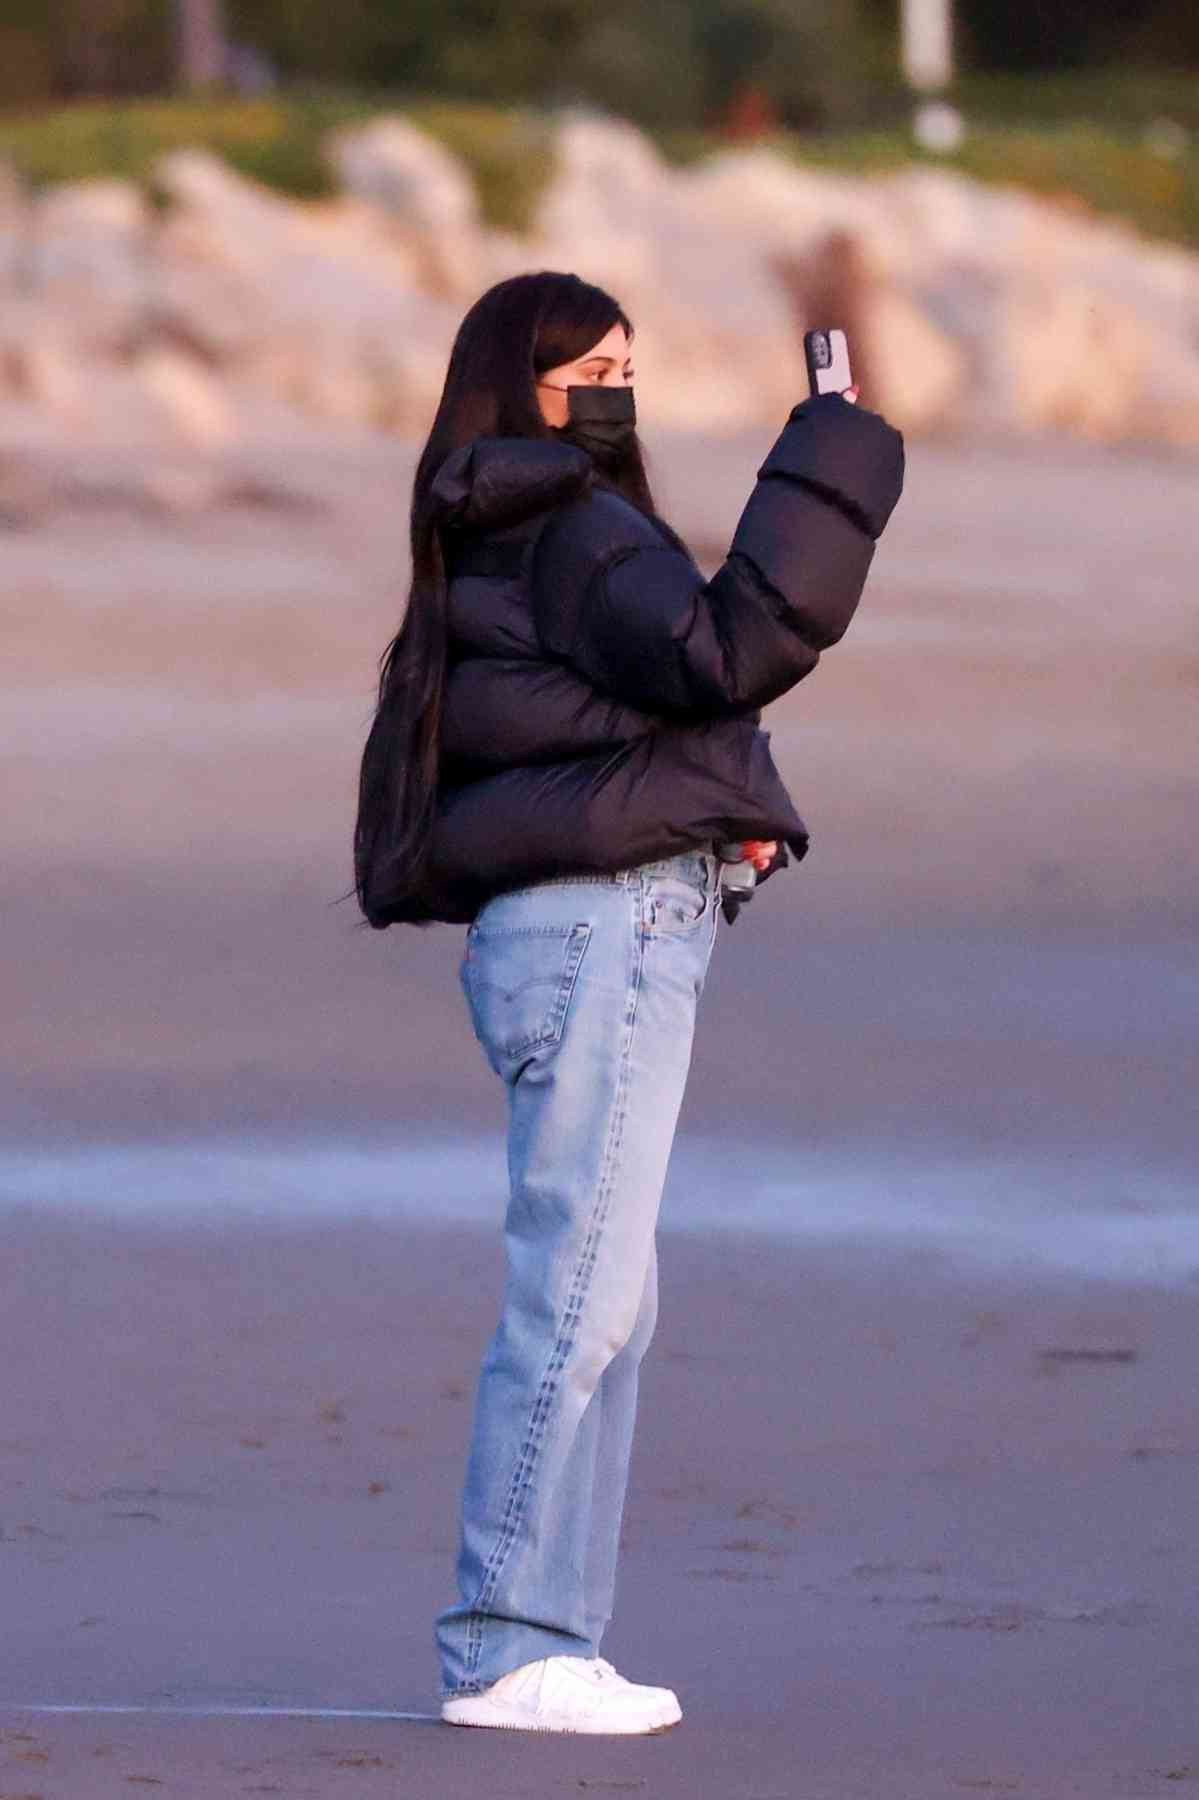 Kylie Jenner wearing acid washed jeans with side pockets